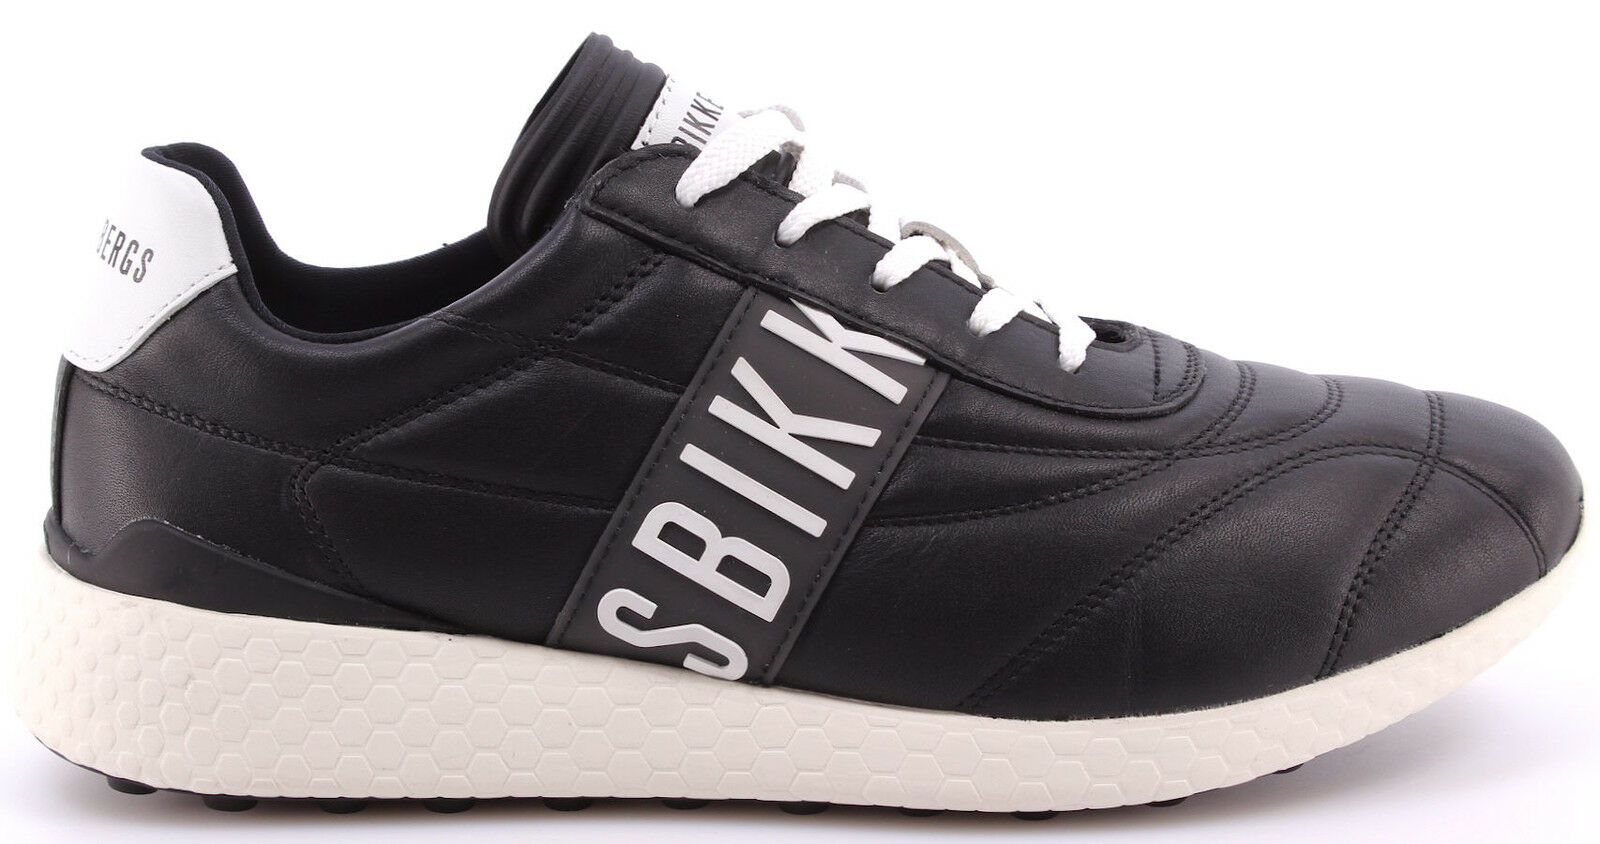 Zapatos caballero zapatos zapatillas Bikkembergs BKE 108711 strik él 895 Leather negro blanco